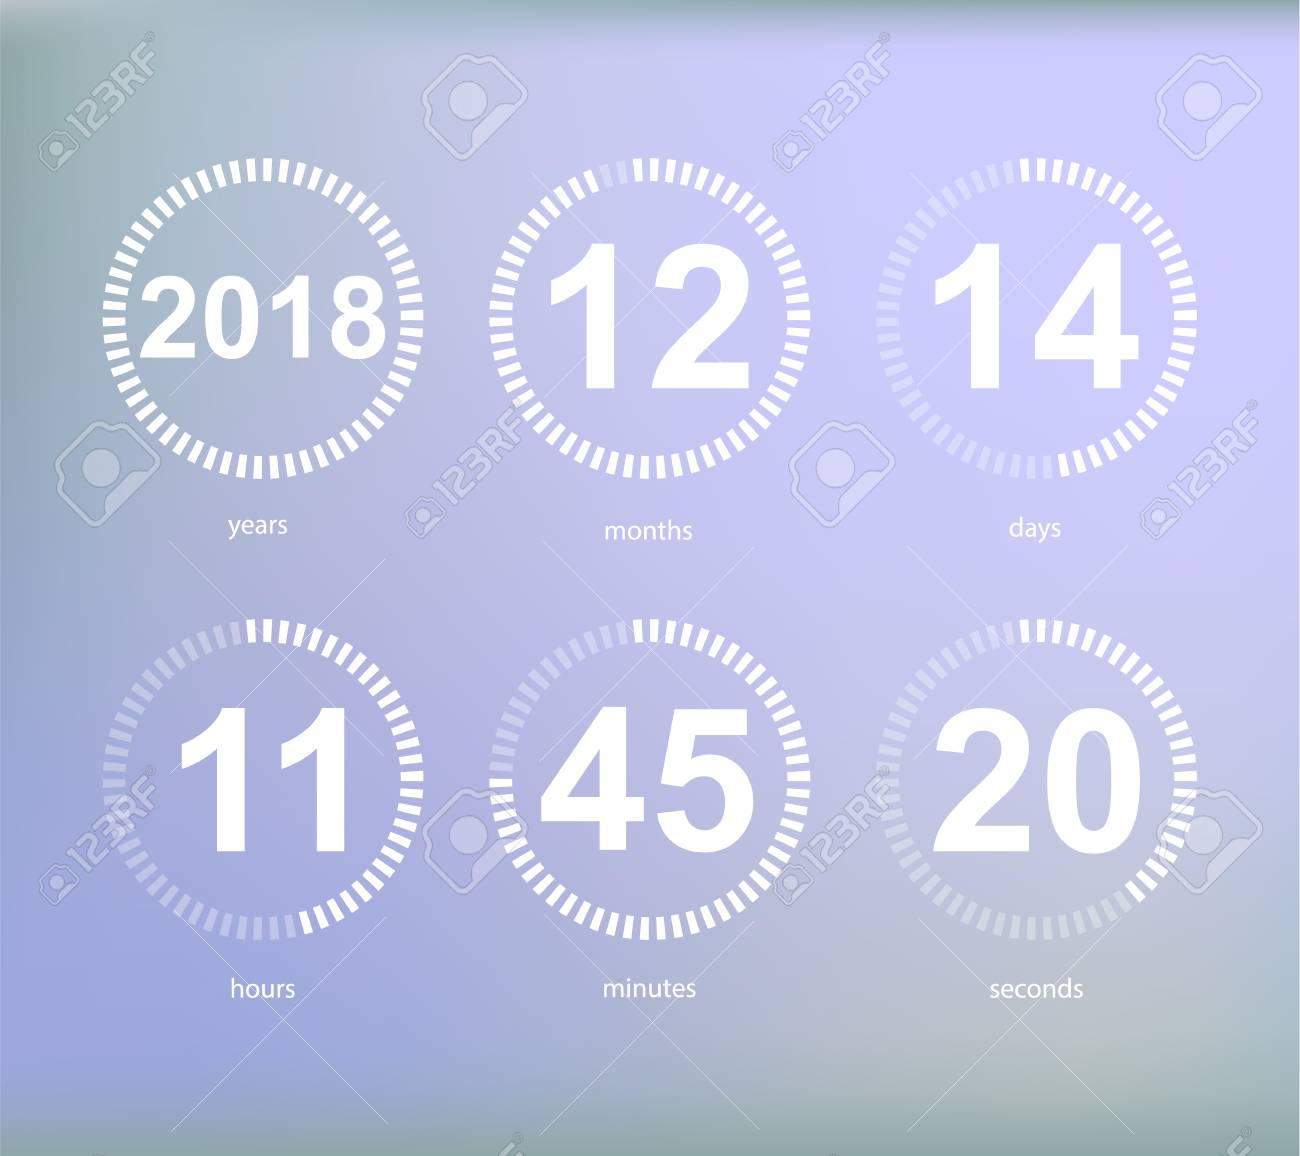 Days Hours Minutes Seconds Icon Of Timer Showing What Time Is Royalty Free Cliparts Vectors And Stock Illustration Image 96042859 How many seconds are in a day? 123rf com